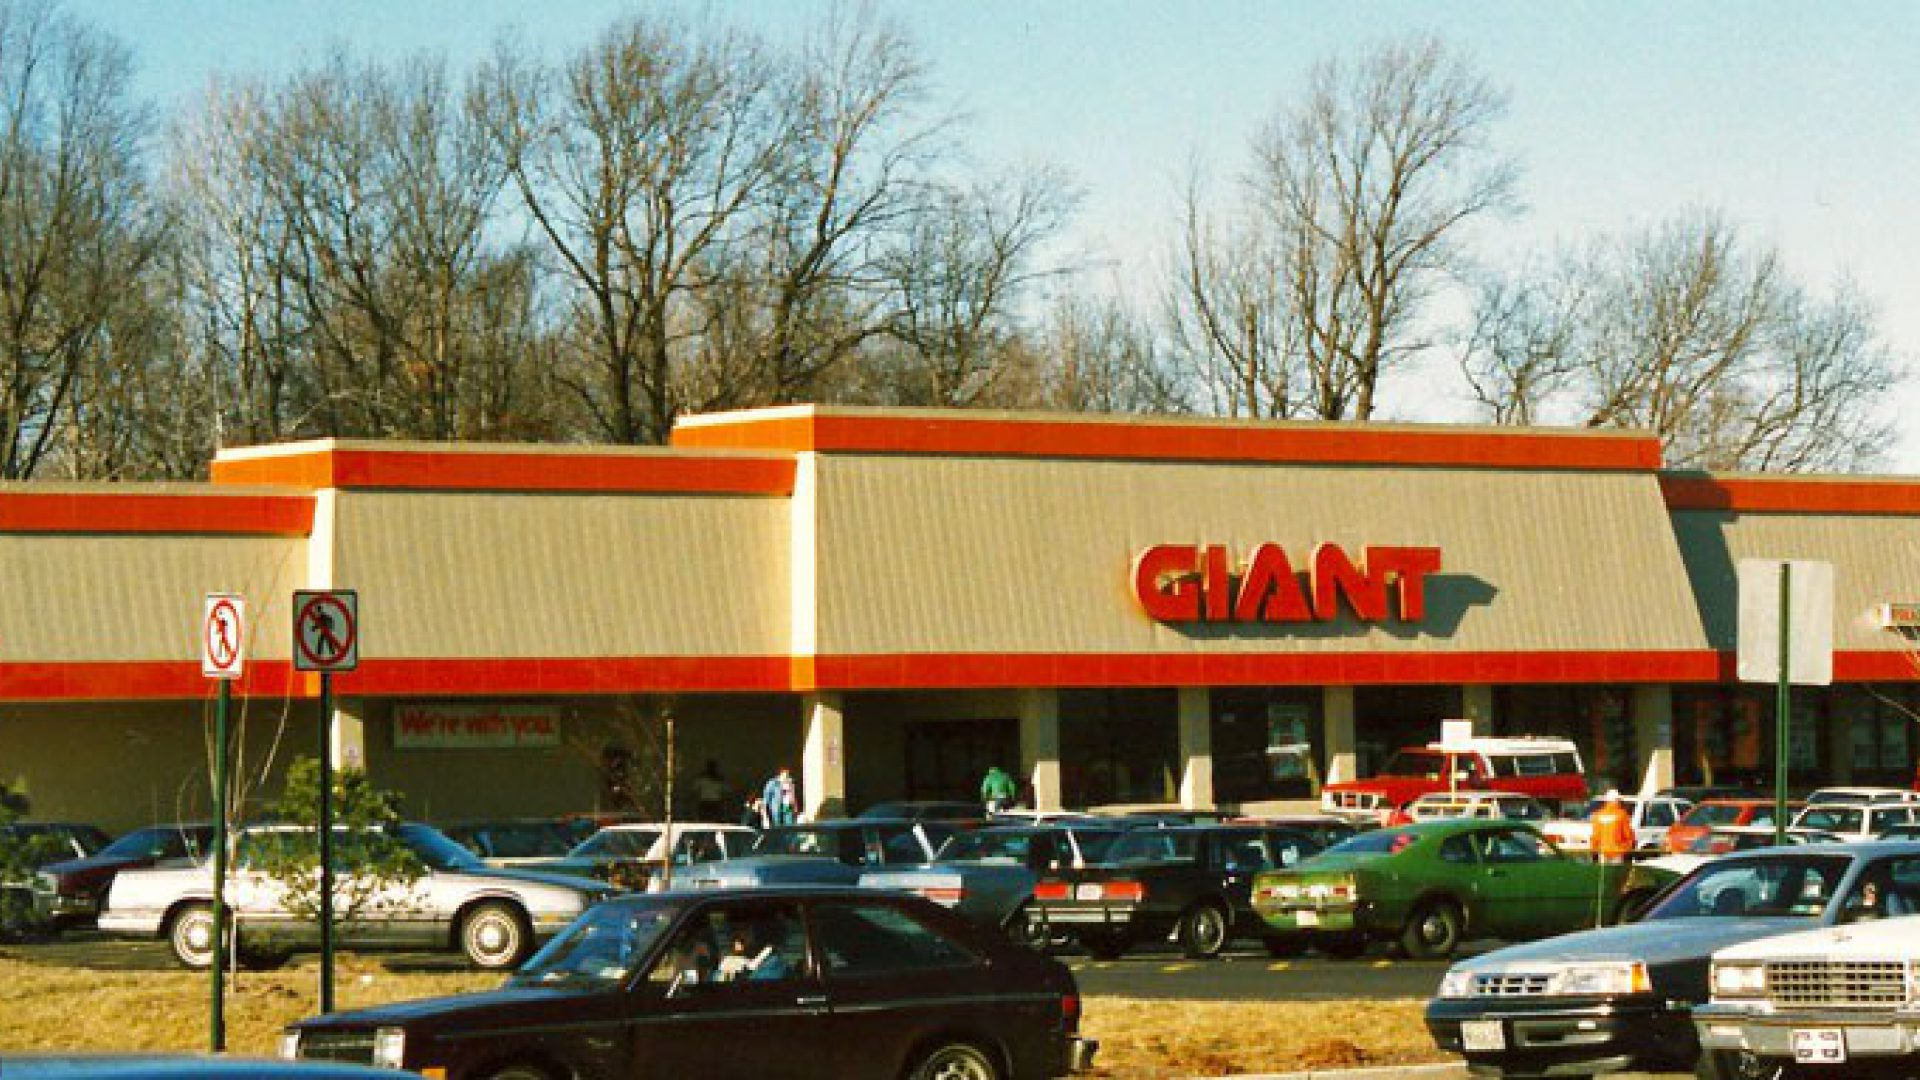 Property: Giant Food